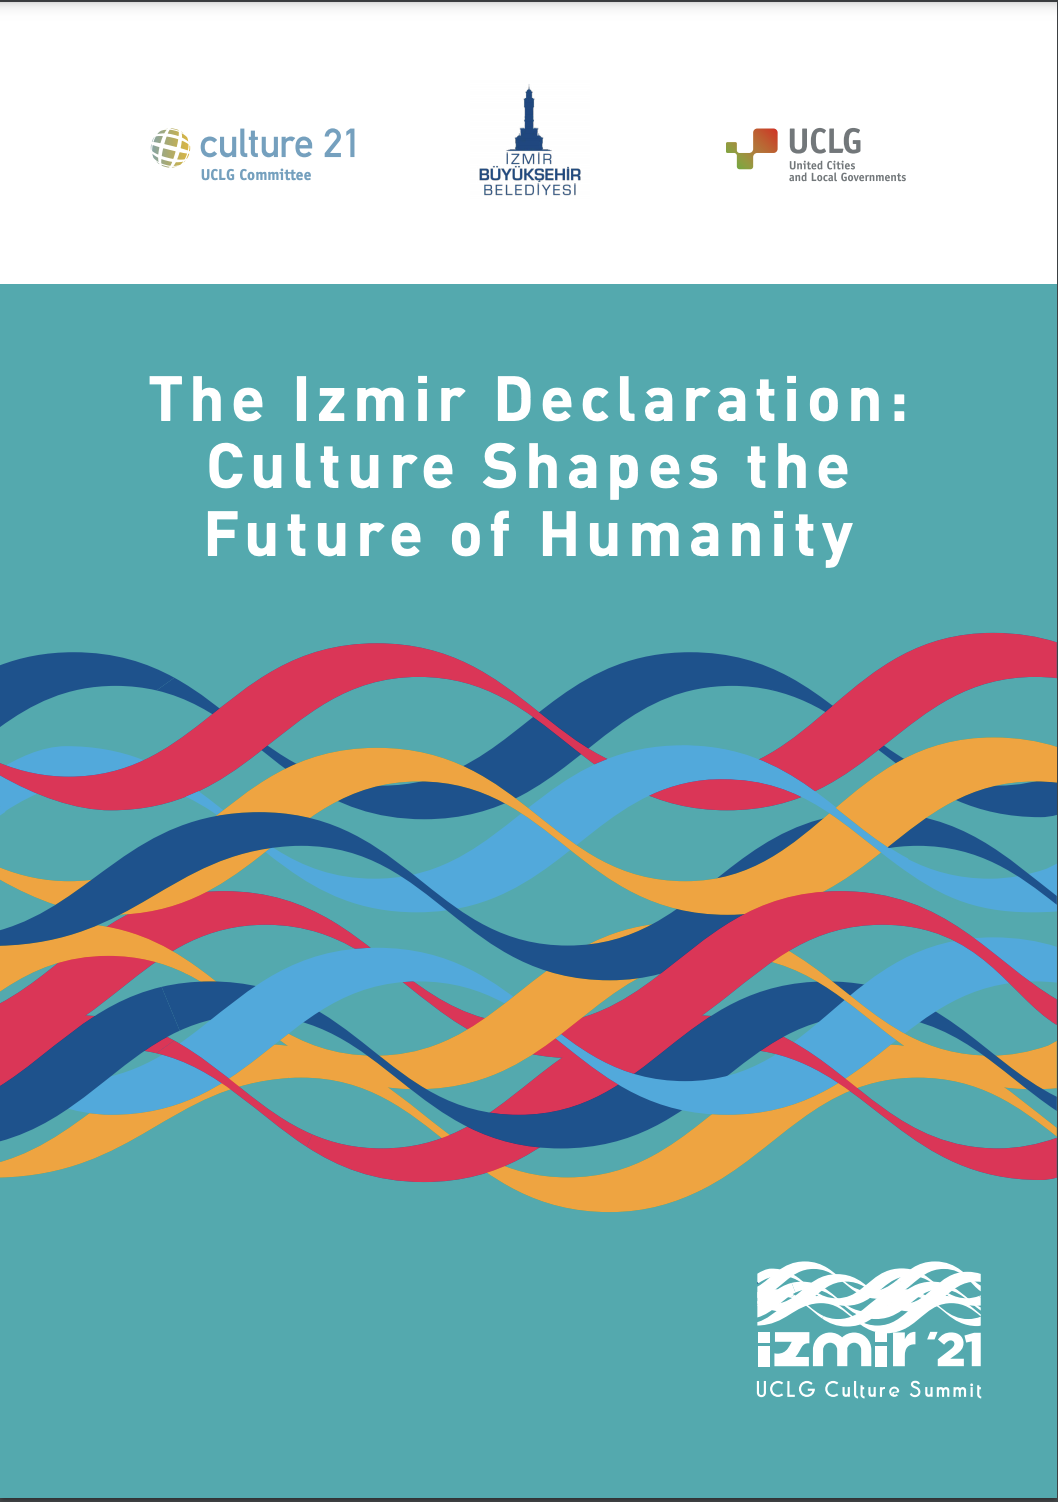 The Izmir Declaration: Culture Shapes the Future of Humanity